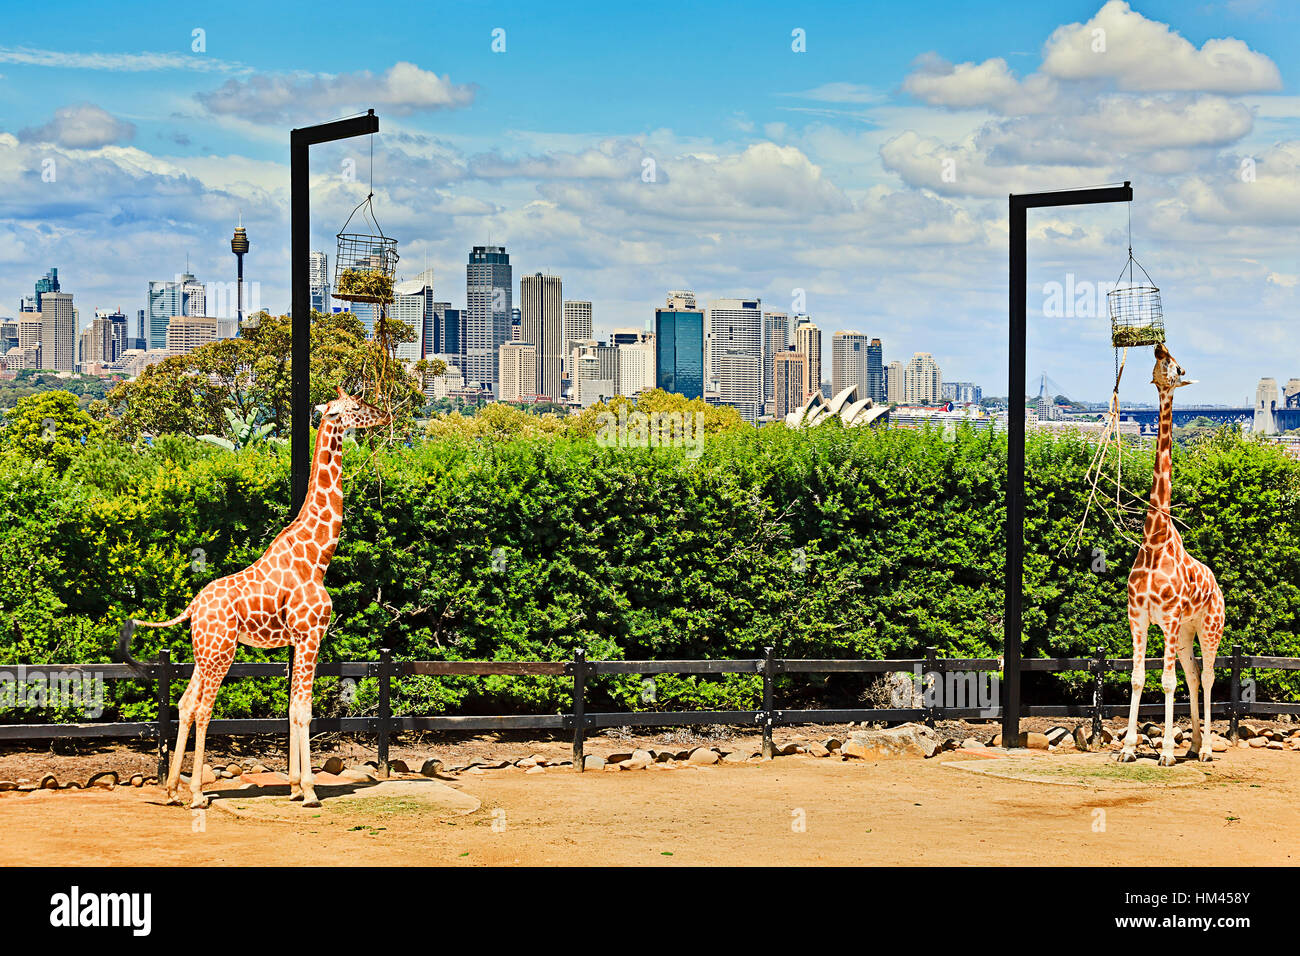 A couple of african giraffes in green park area on shore of Sydney harbour against city CBD landmarks are eating - Stock Image